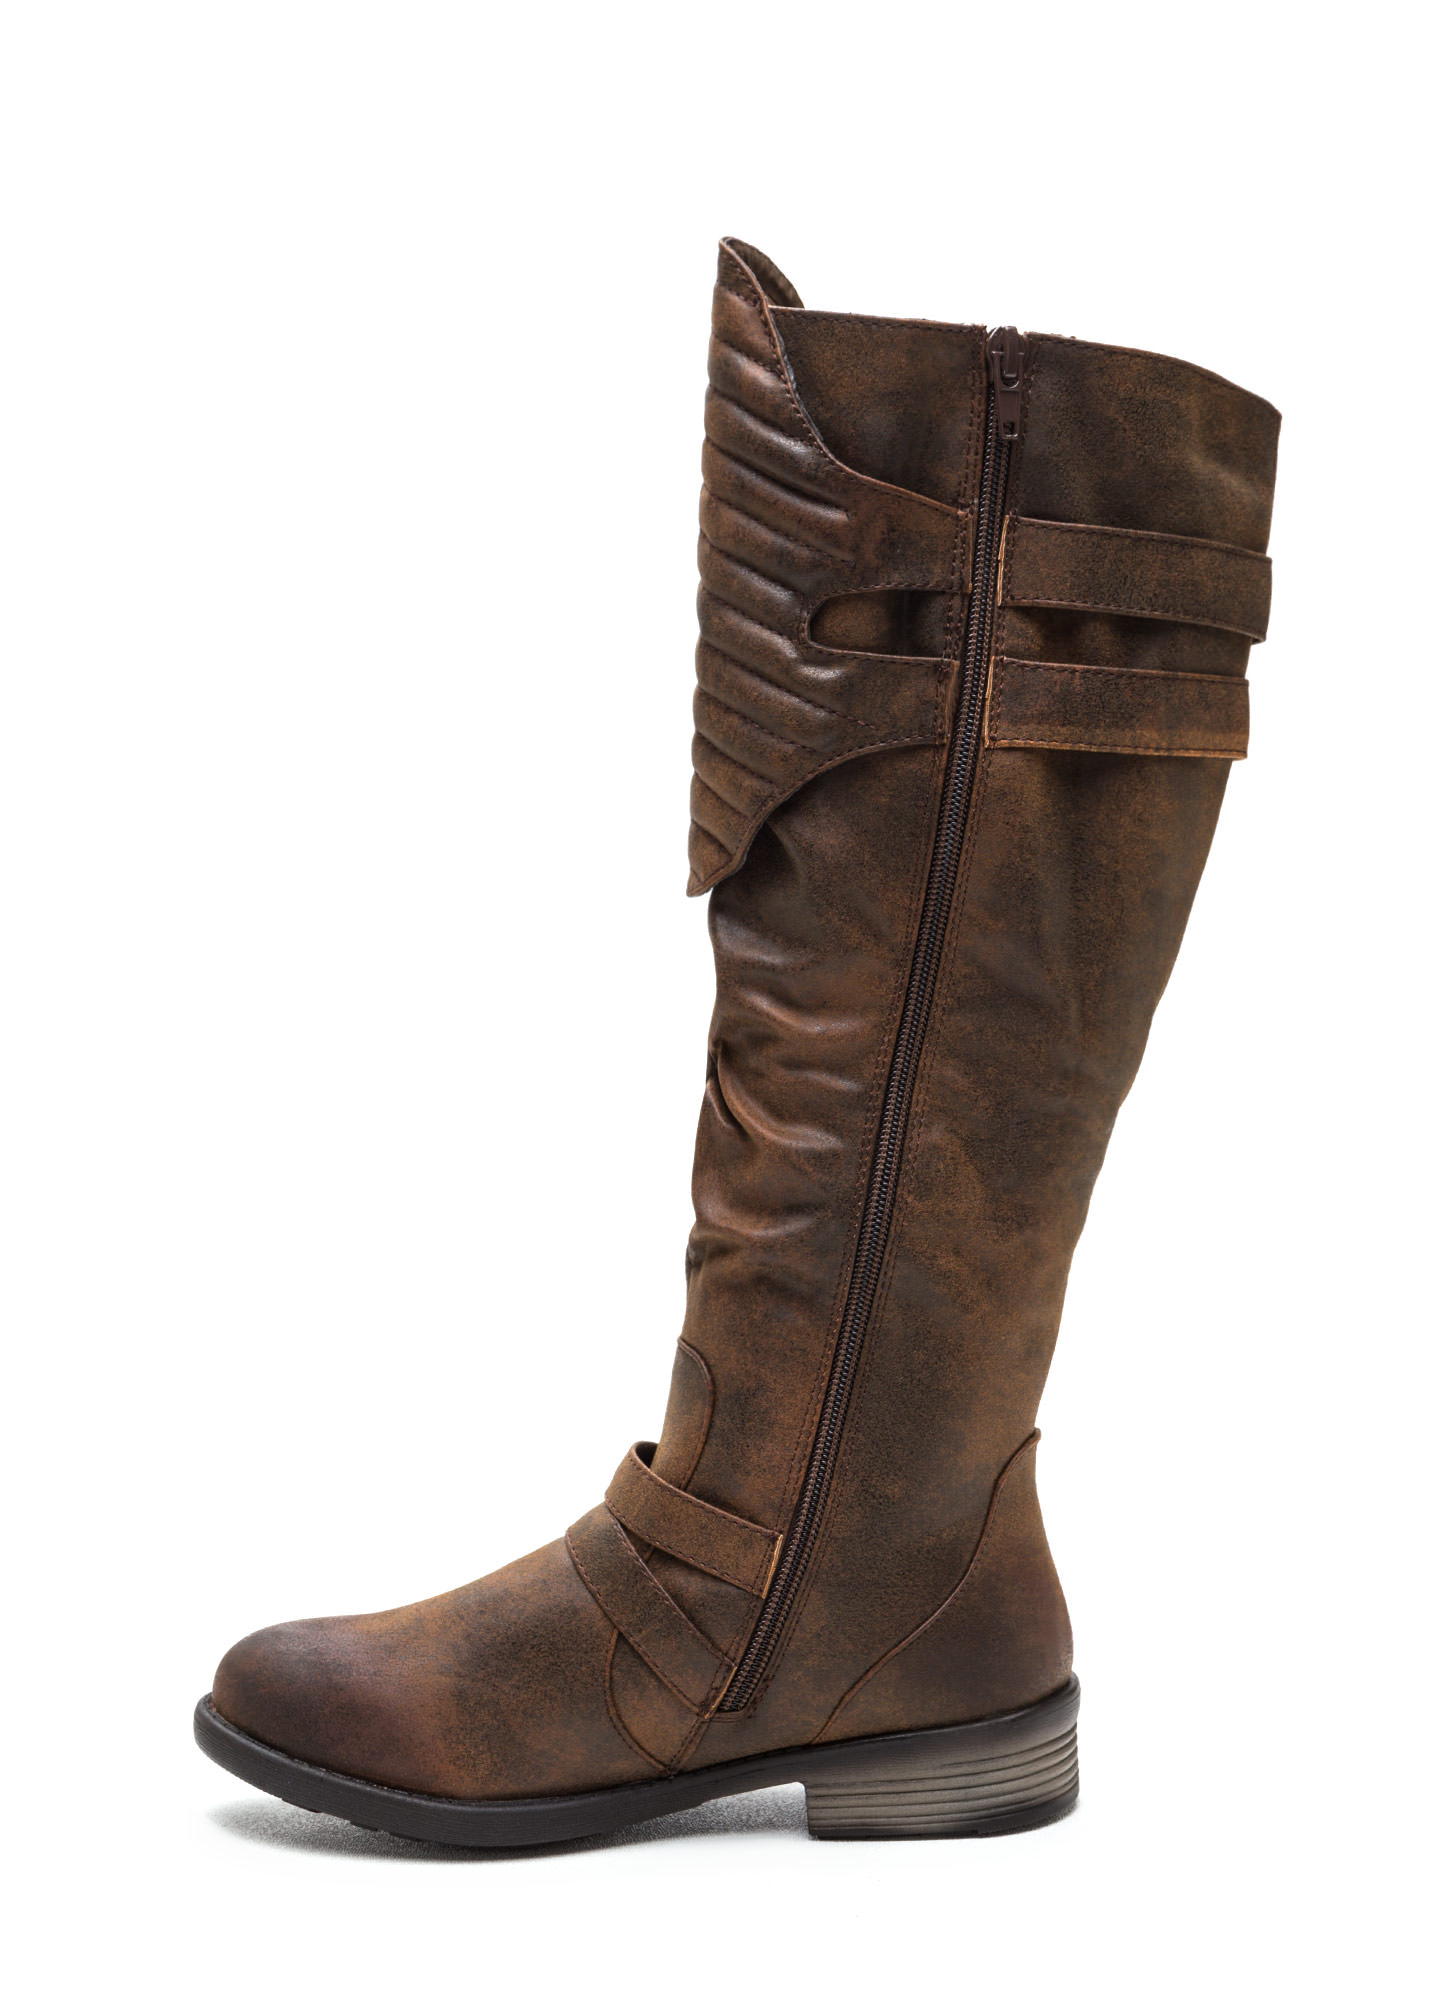 Gimme A Moment Faux Nubuck Boots DKBROWN